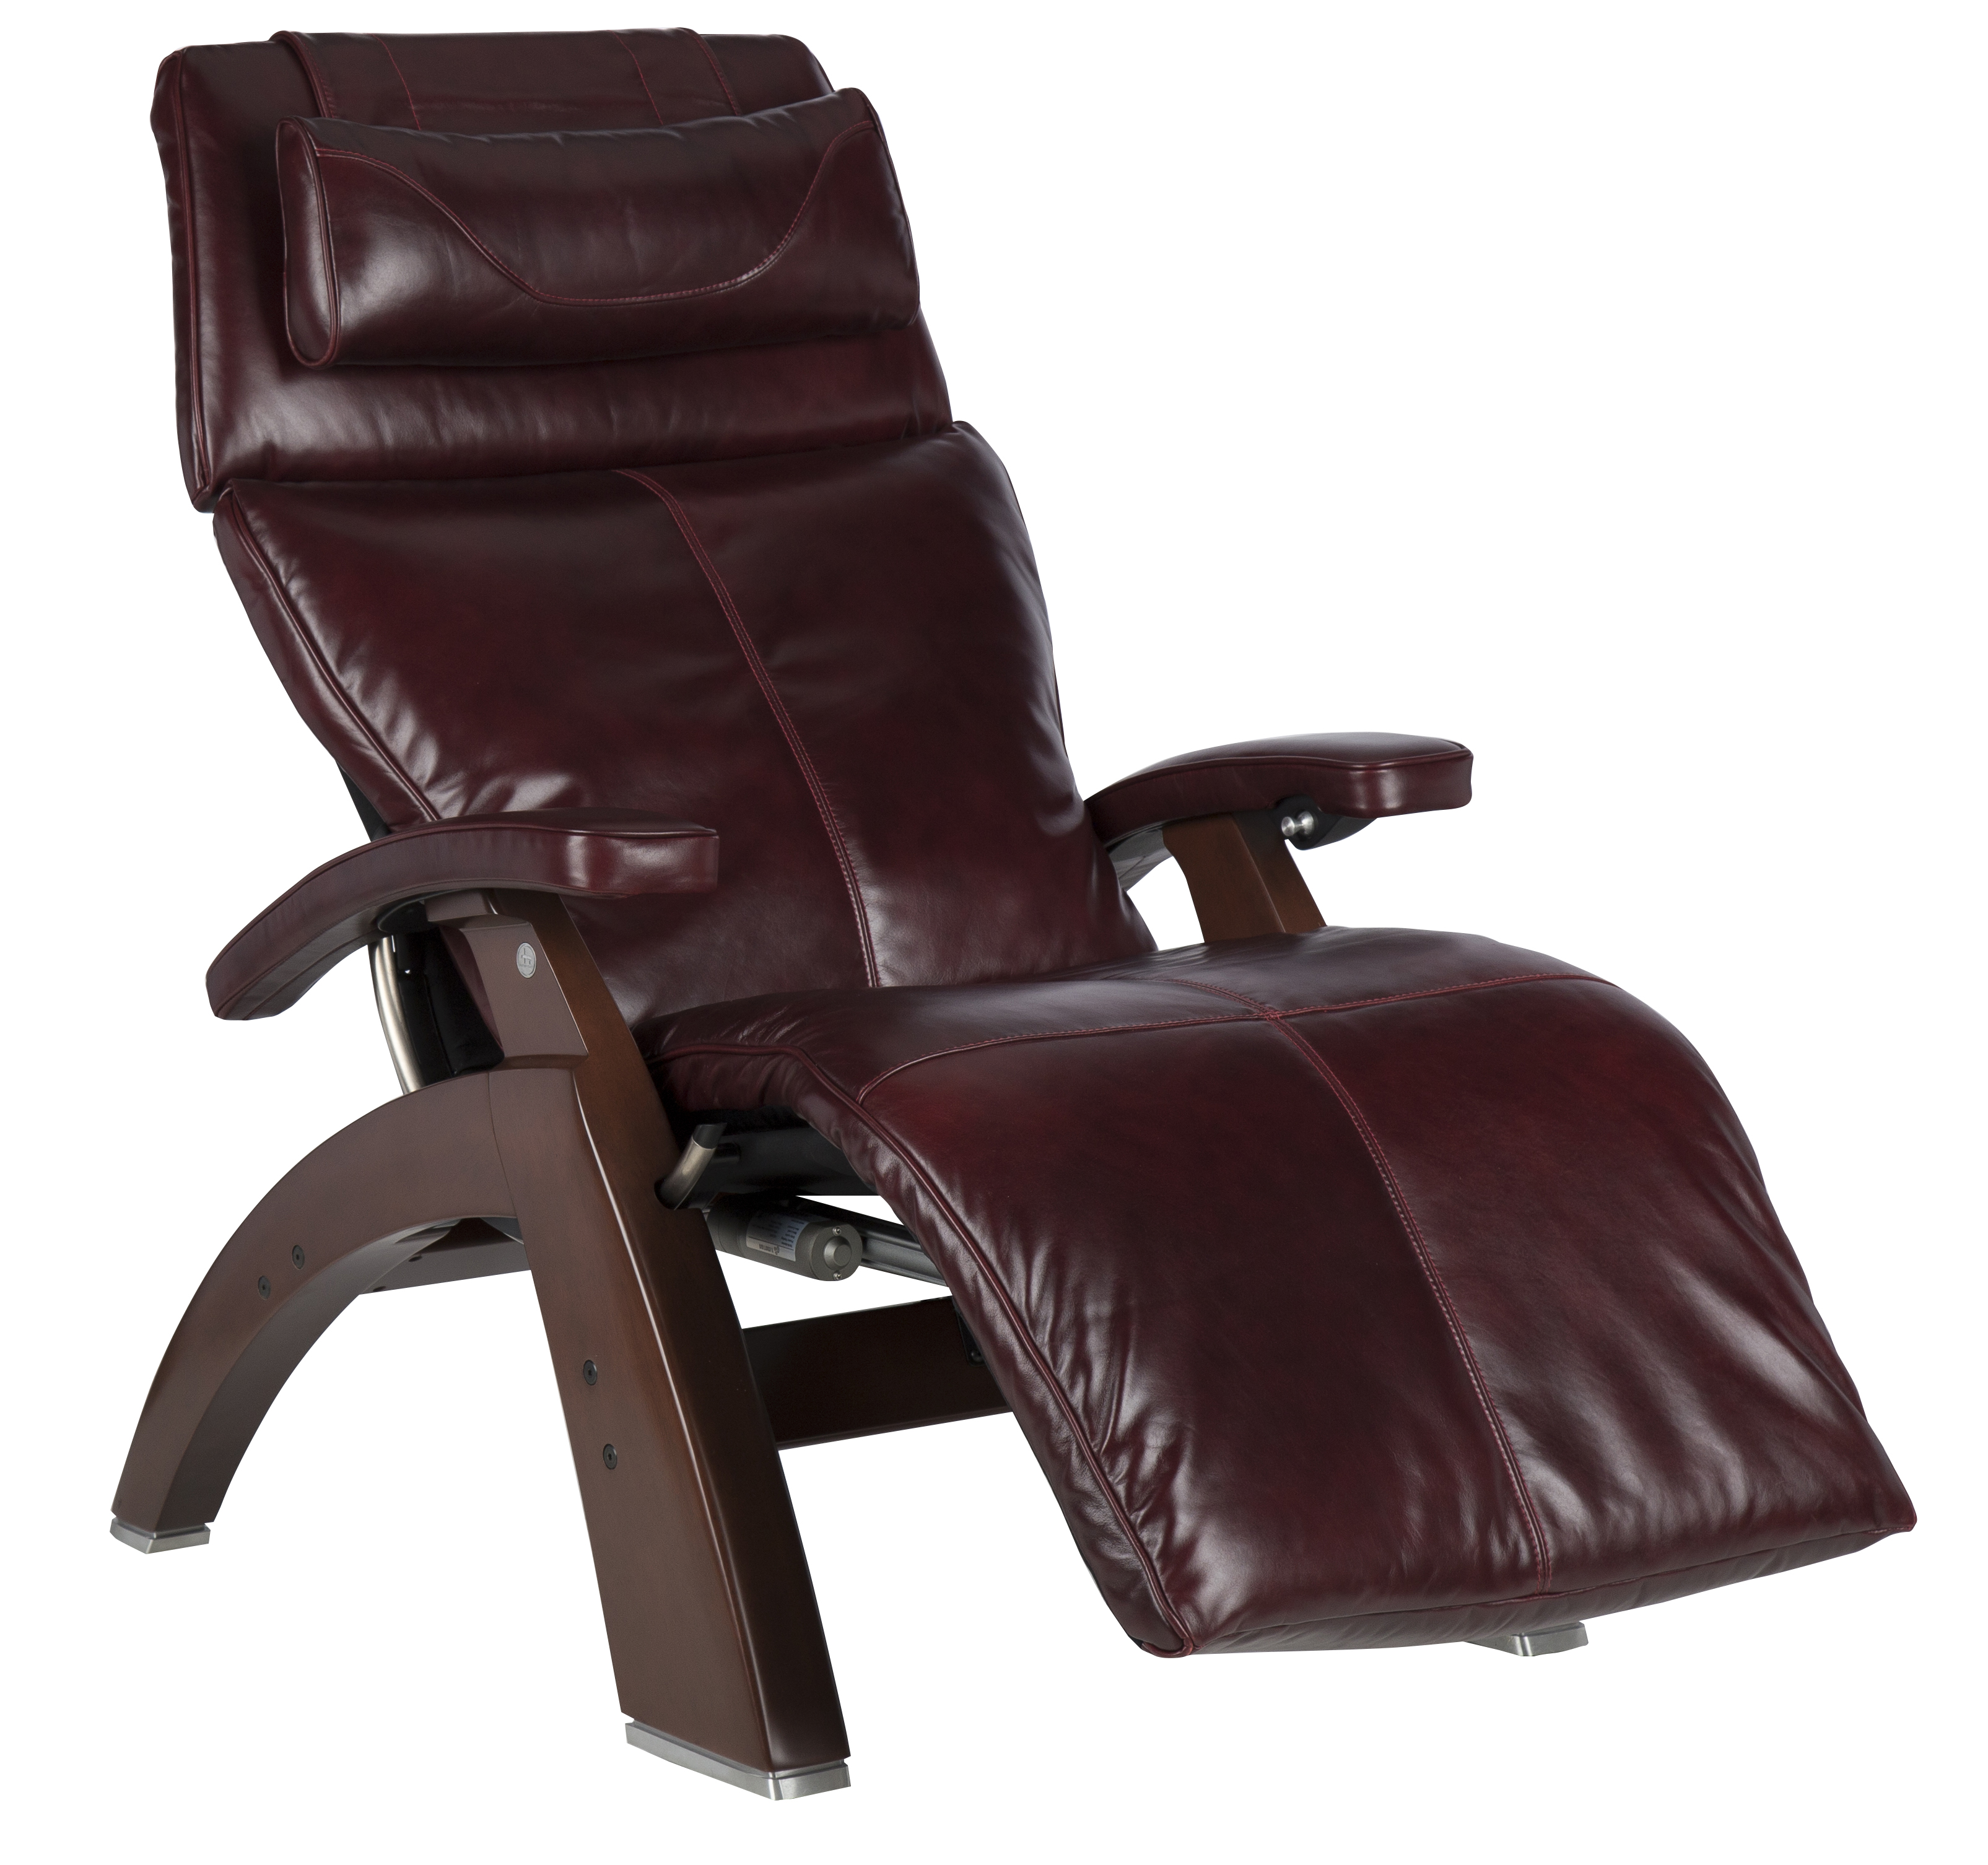 Best Chiropractic Chairs 10 Best Orthopaedic Office Chairs For